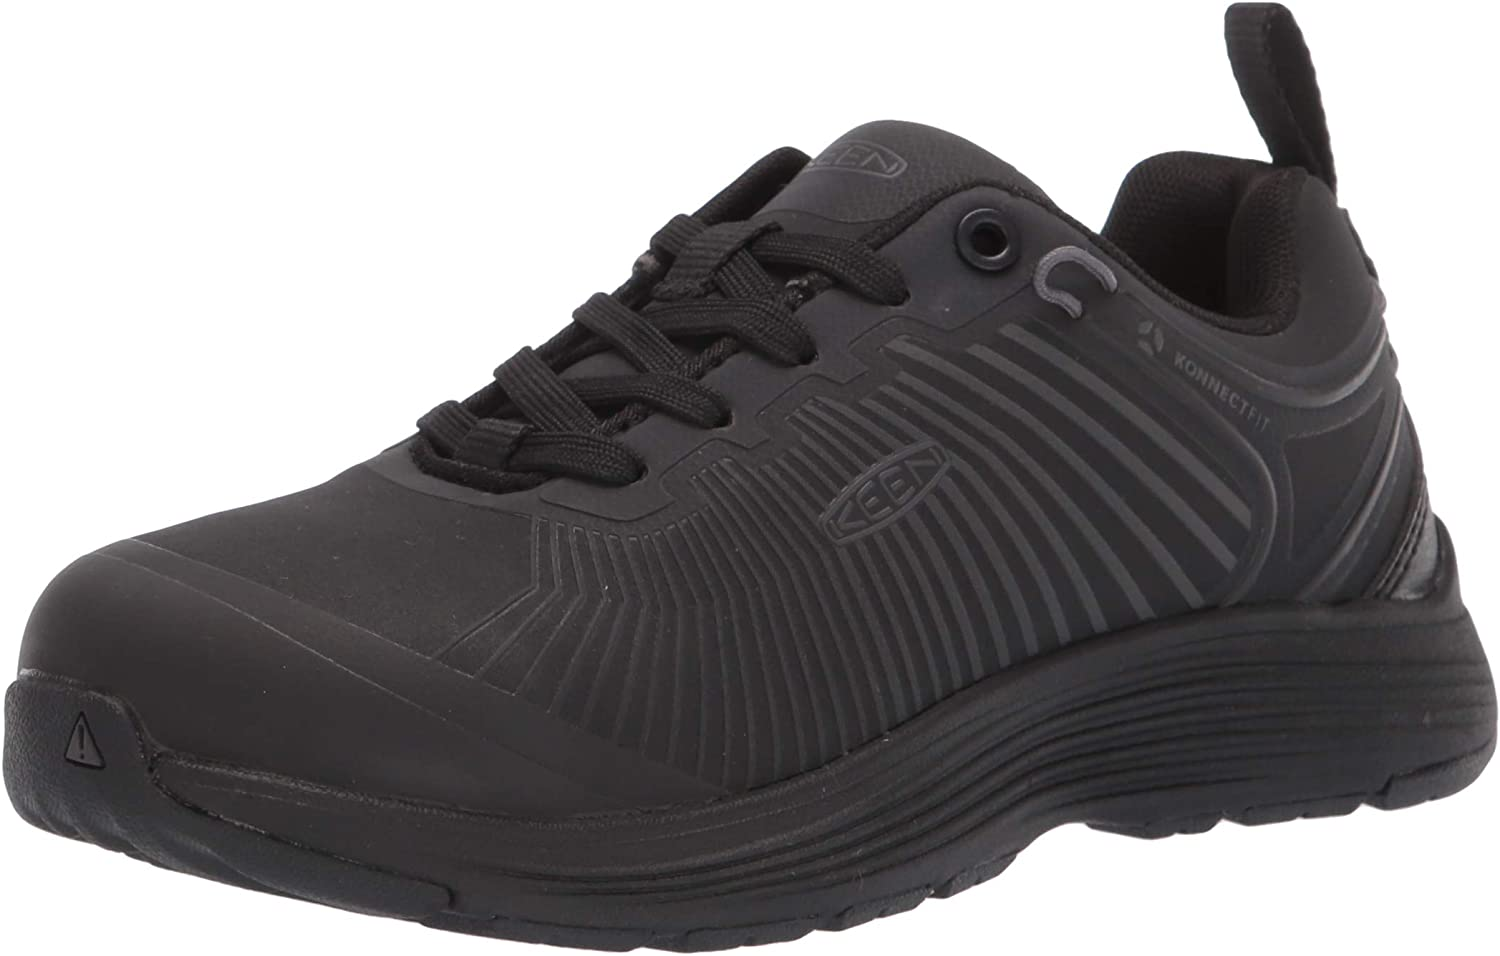 KEEN Utility Women's Sparta XT Low Alloy Toe Non Slip Work and Construction Shoe